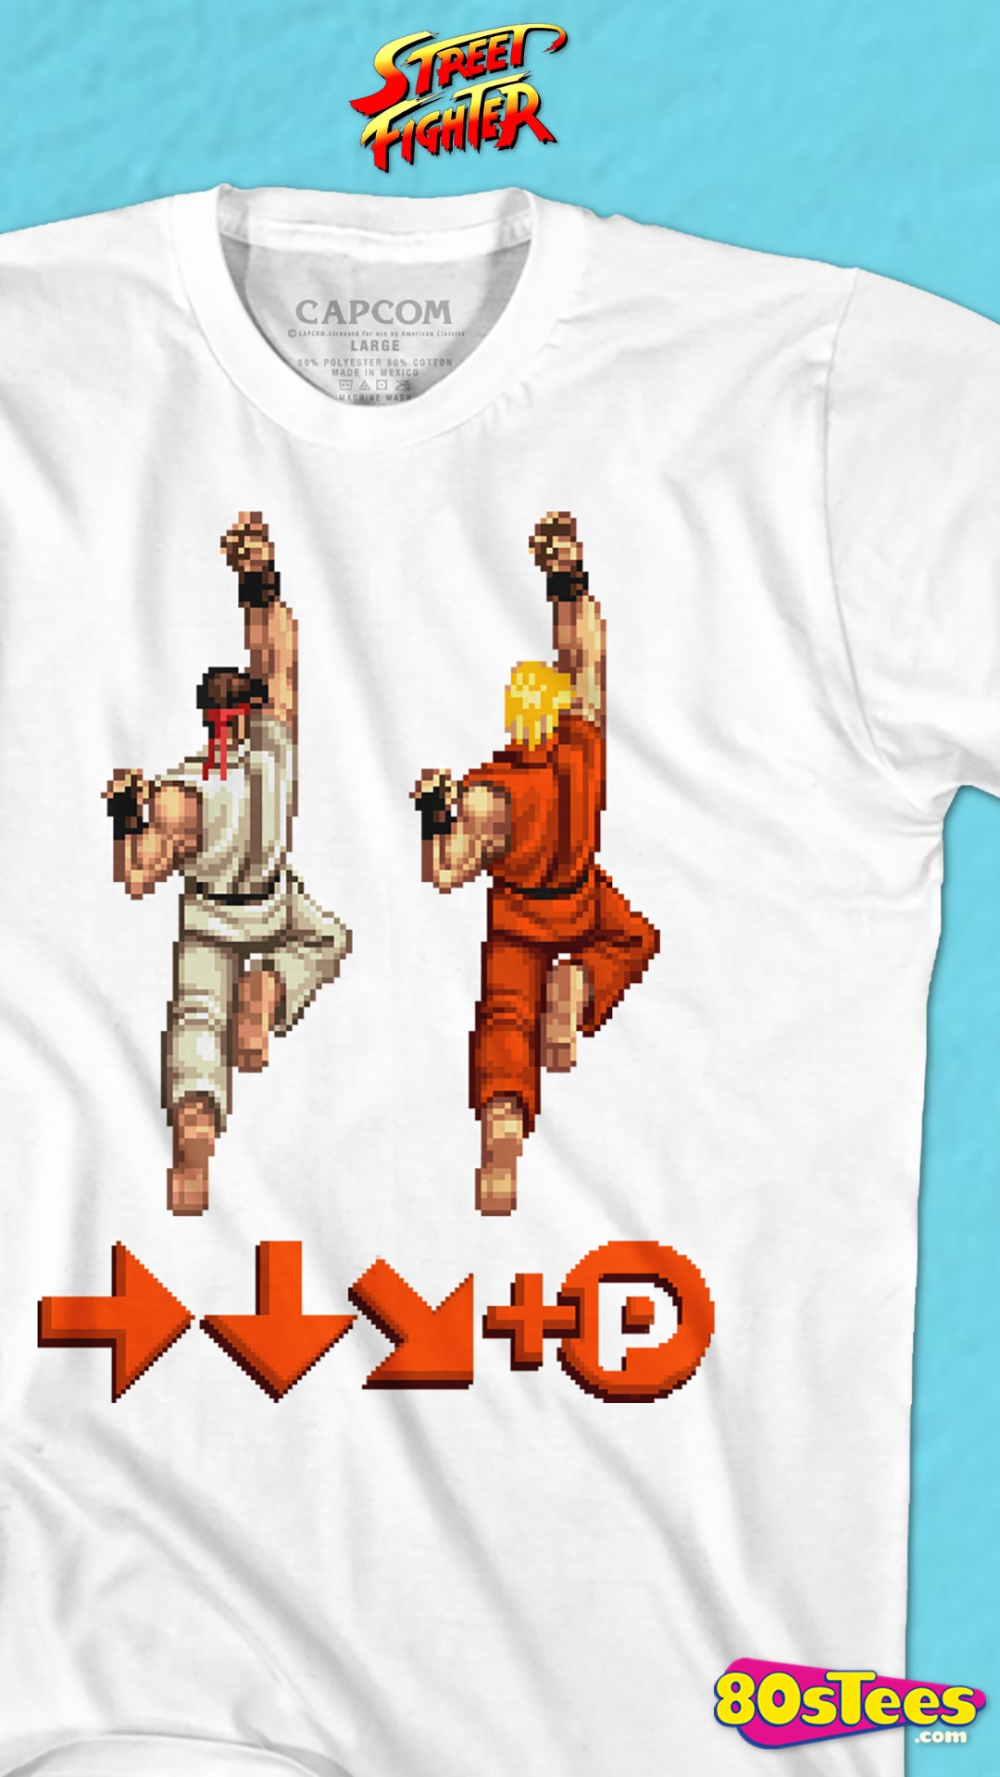 This Street Fighter T Shirt Shows Ryu And Ken Masters Performing The Shoryuken Special Attack The Shirt Includes The Forwa In 2020 Street Fighter Mens Tshirts T Shirt